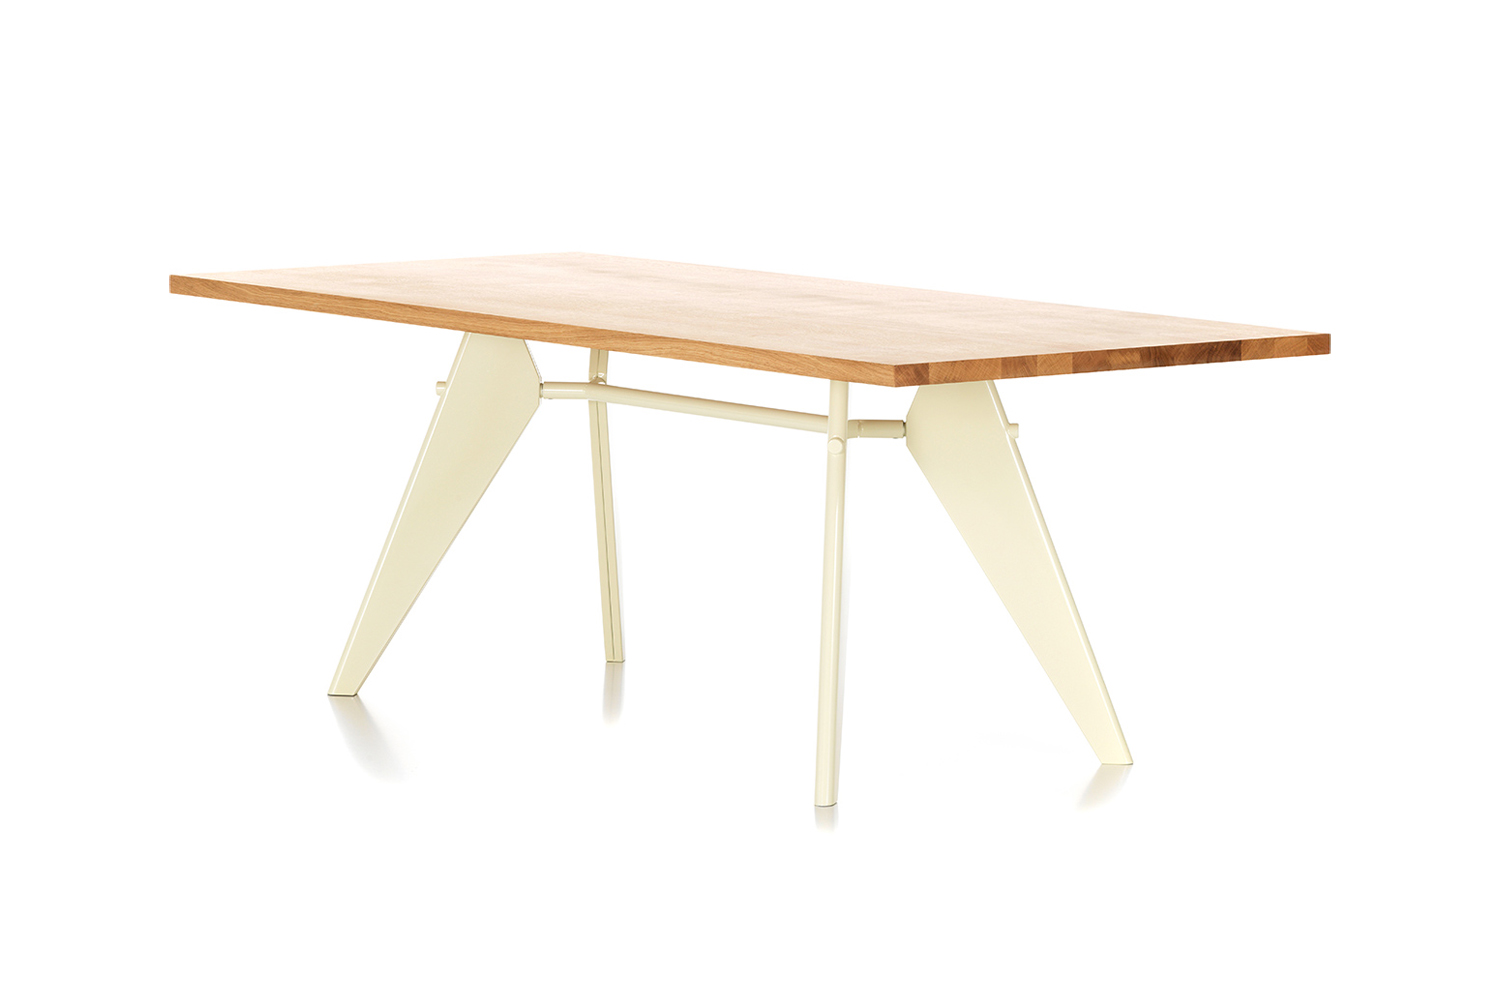 designed by jean prouvé in \1950, the classic prouvé em table is available in 13